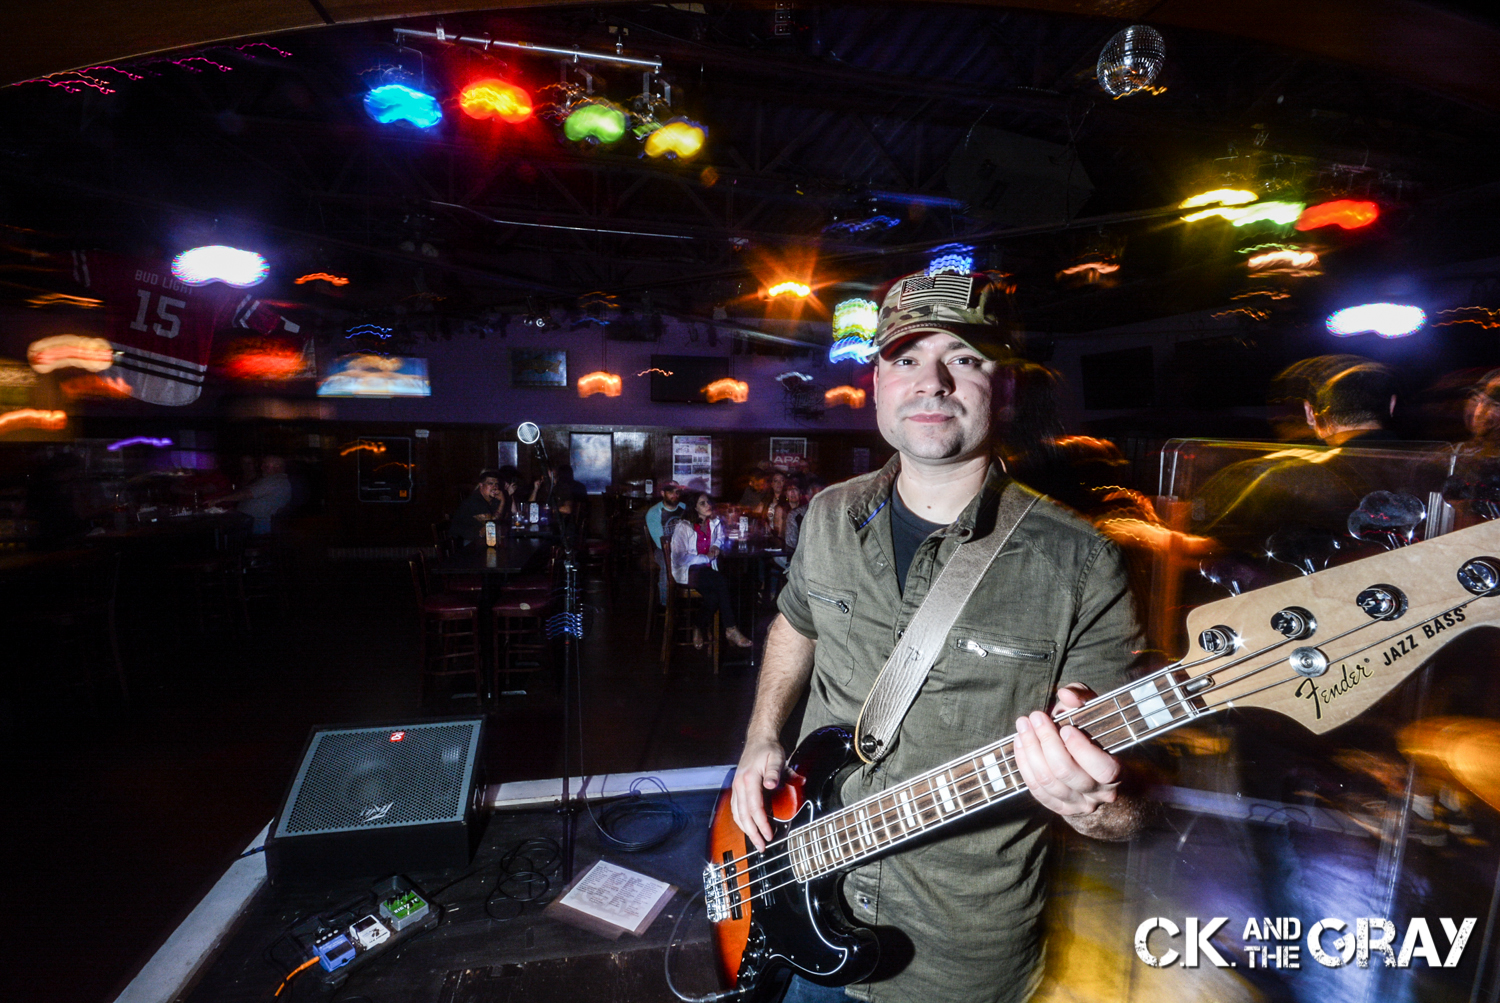 Ken Vercellotti of CK and The Gray performs at Jenny's Southside Tap in Mokena